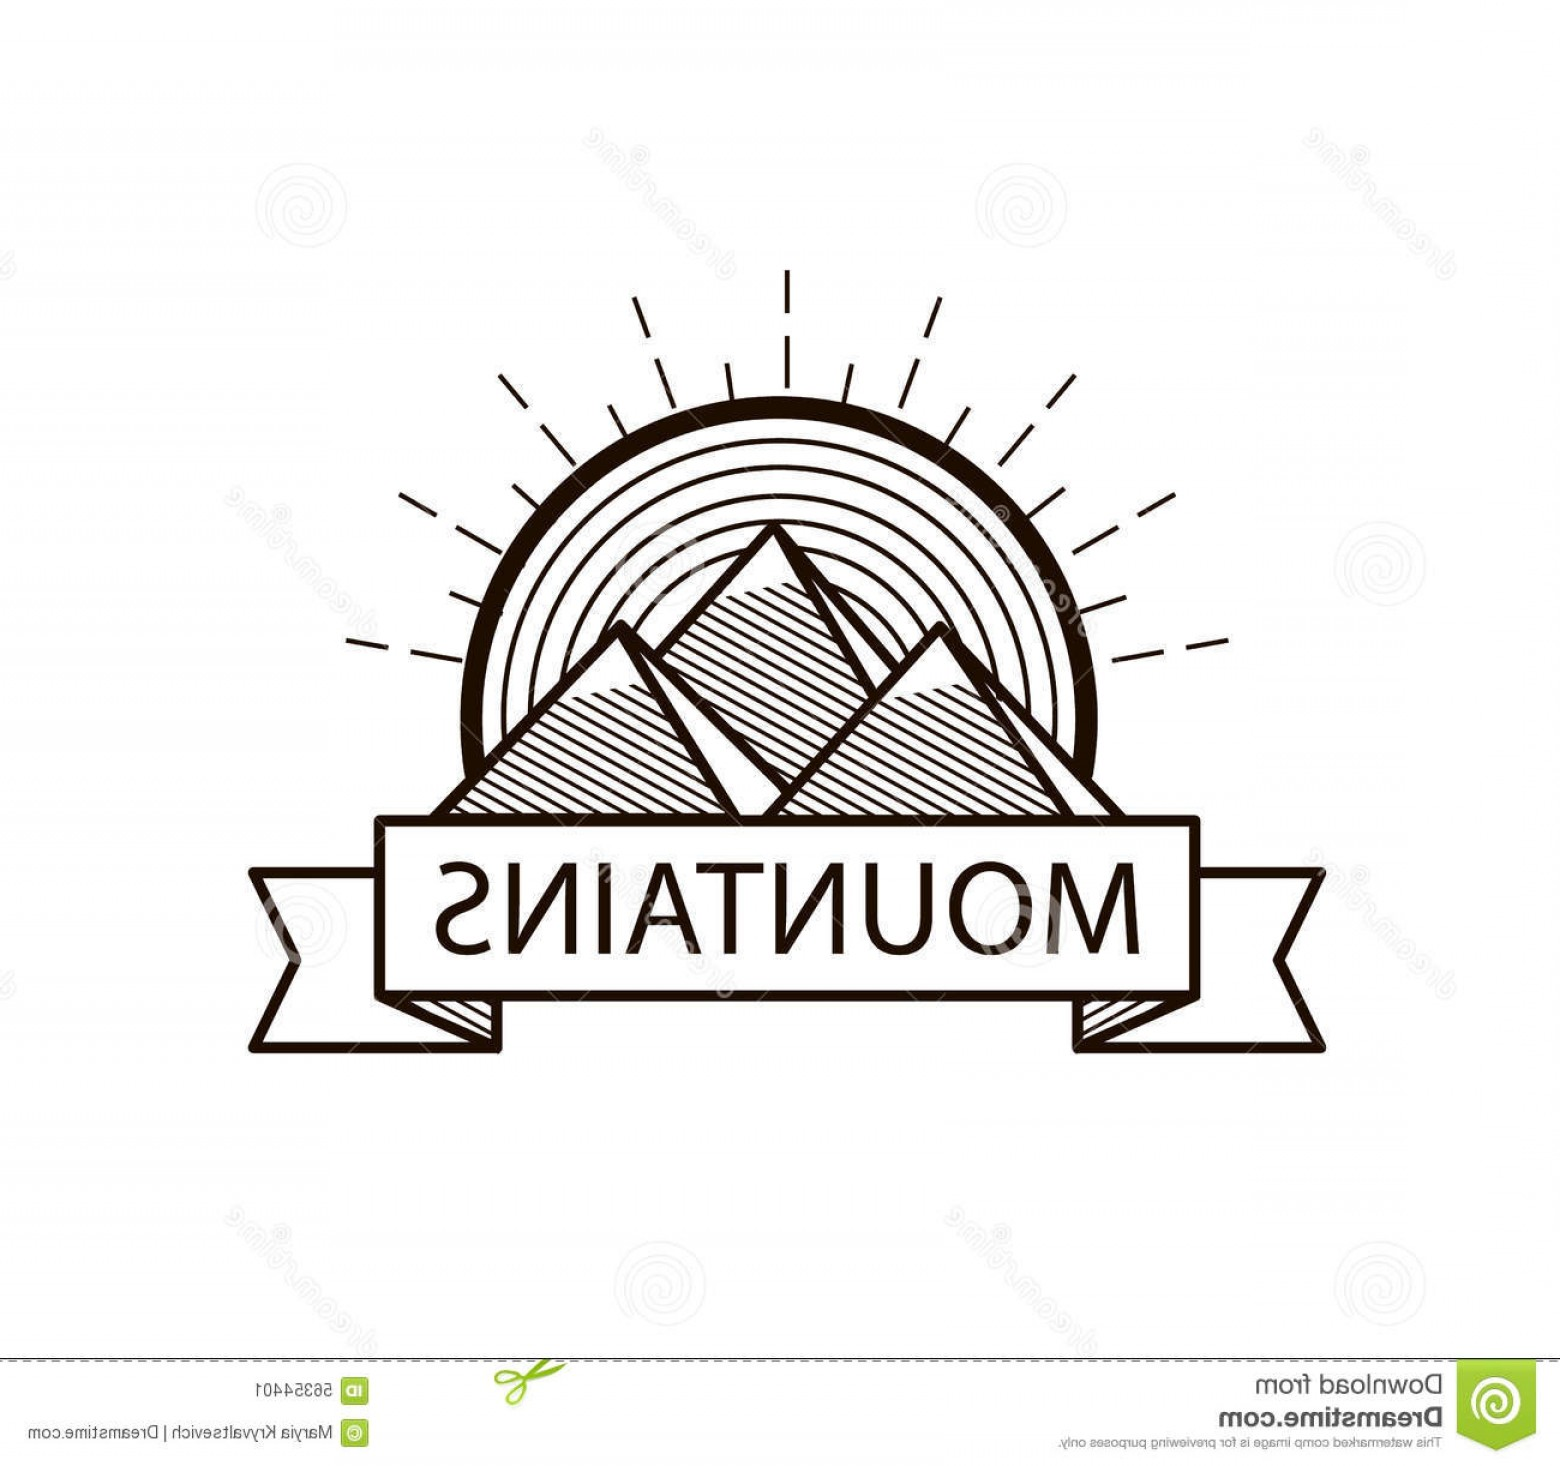 Hipster Logo Vectors Mountain: Stock Illustration Vector Mountains Line Hipster Logo Icon Badge Black White Image